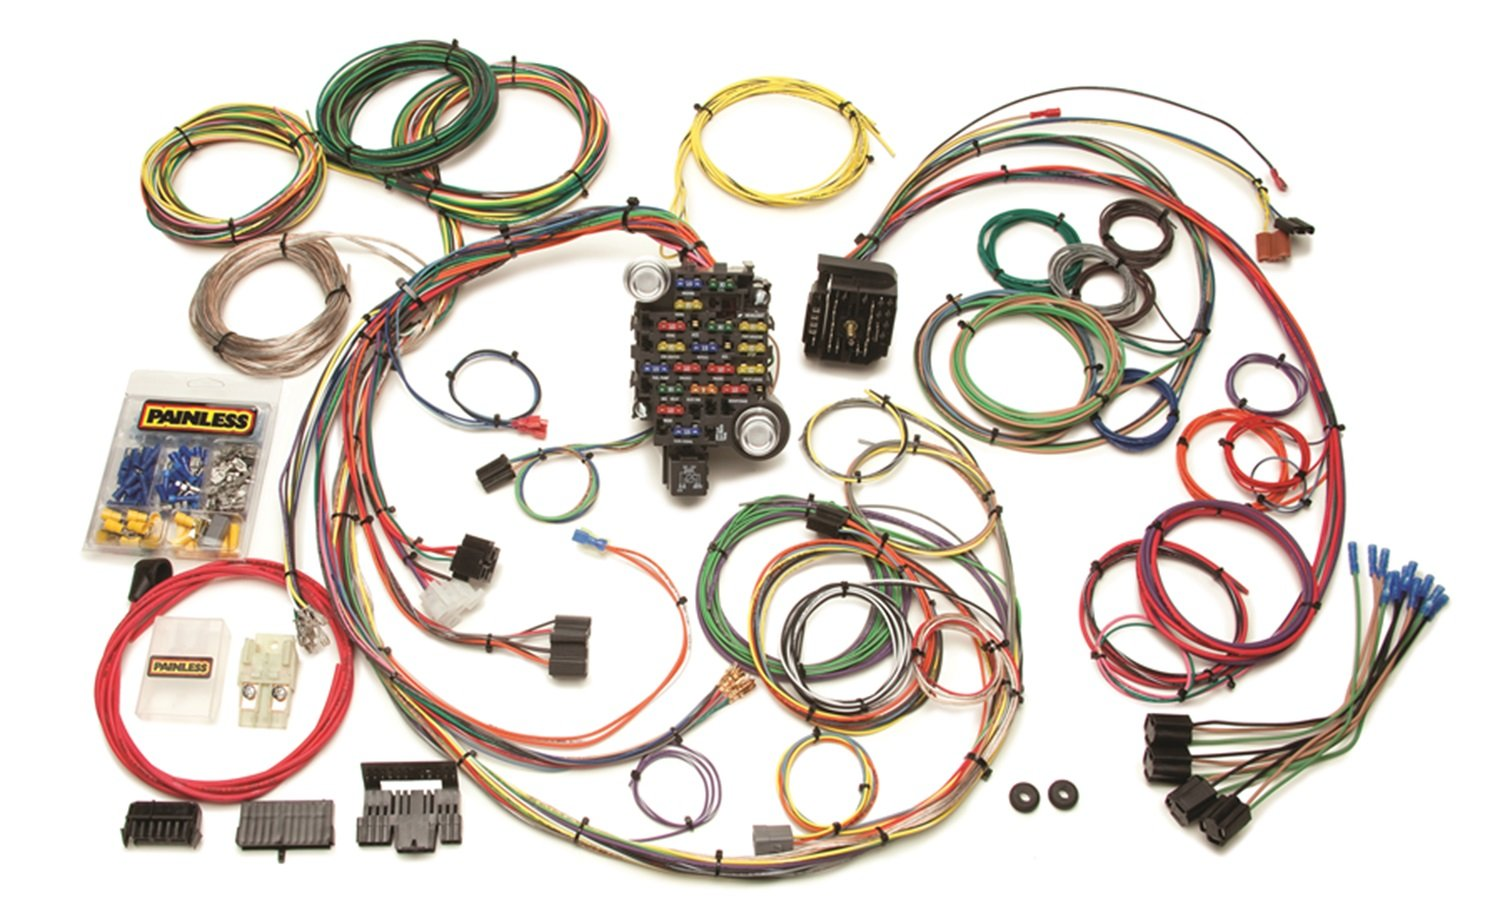 71RvMxx3qDL._SL1500_ amazon com painless 20102 custom wiring harness automotive painless wiring harness at fashall.co